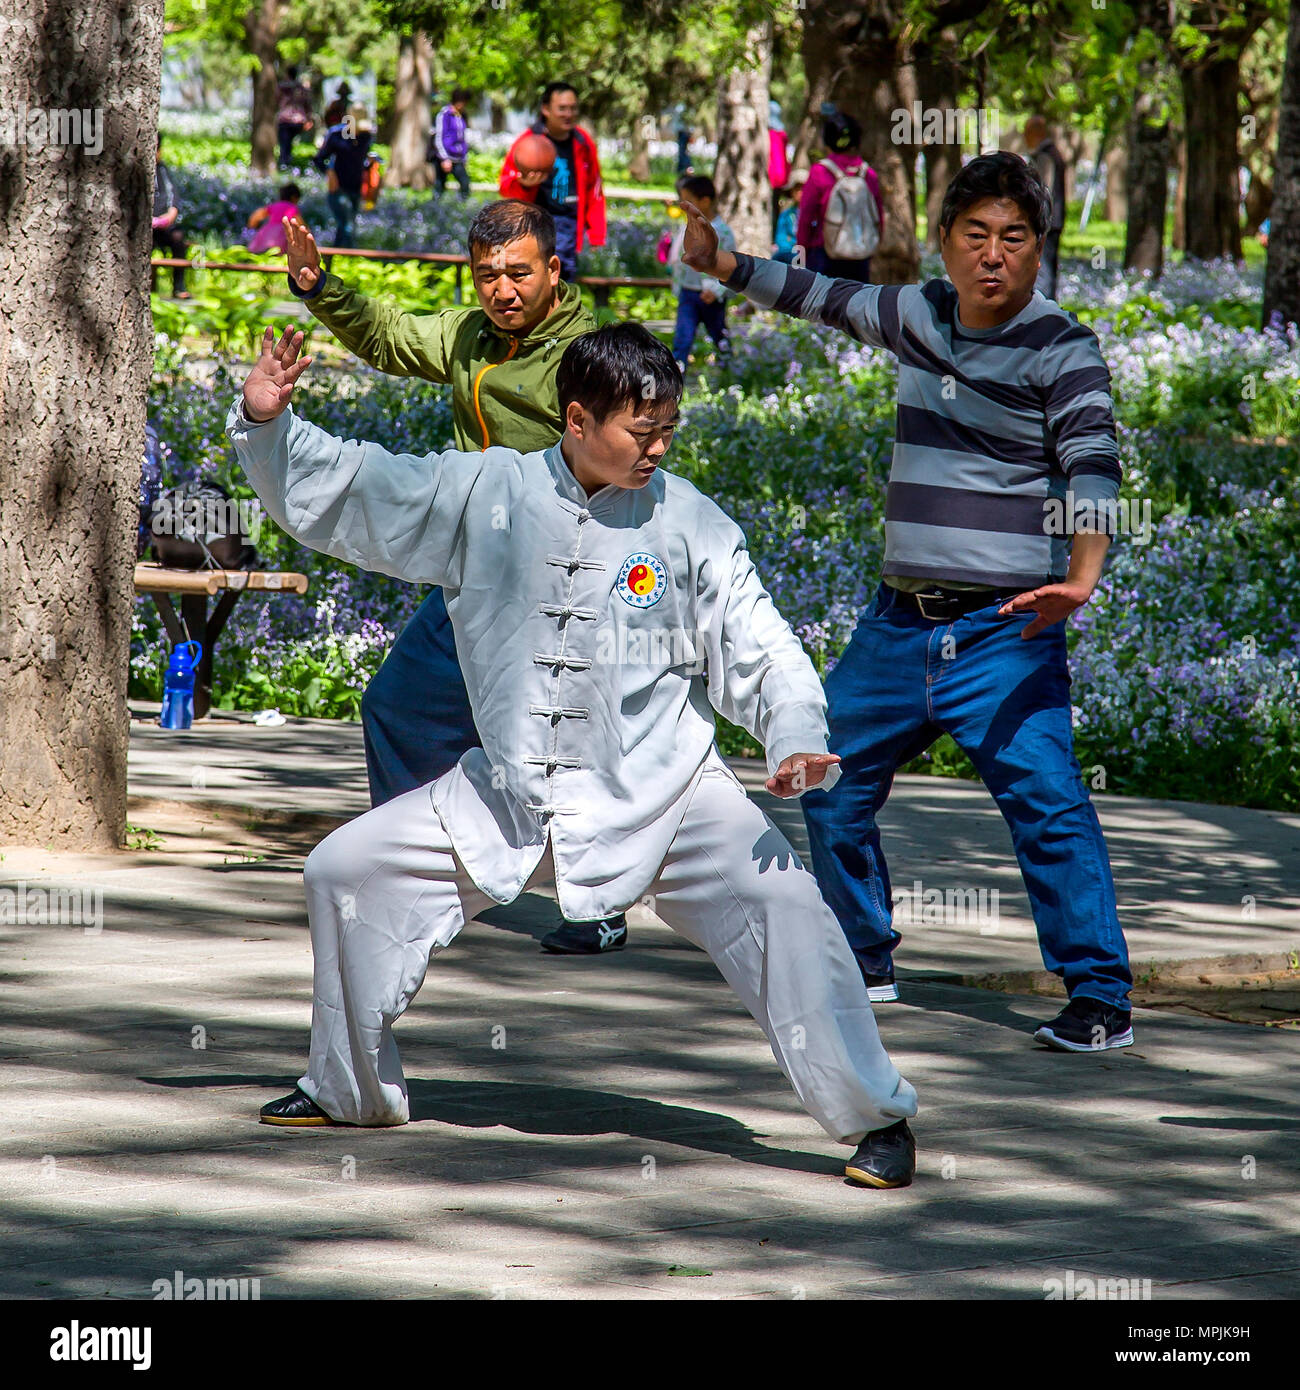 2913f730e A Tai Chi instructor with his students in Beijing Park, China - Stock Image